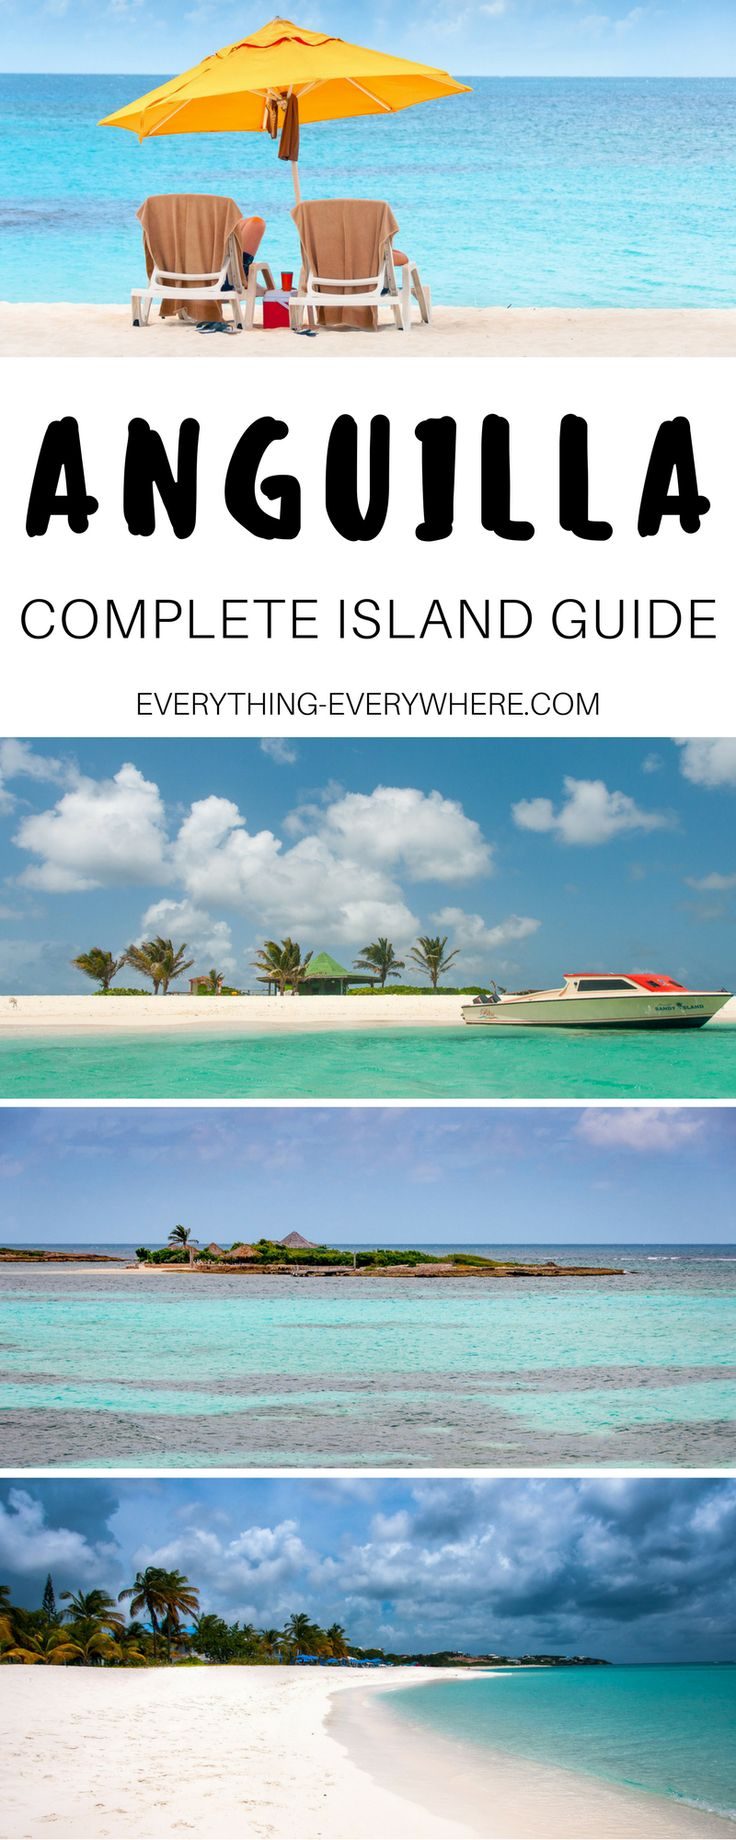 The ultimate guide to visiting Anguilla, a small island nation in the Caribbean. Things to do, best local food and cuisine, top beaches and dive sites + practical tips for your trip.   Everything Everywhere Travel Blog#Anguilla #Caribbean